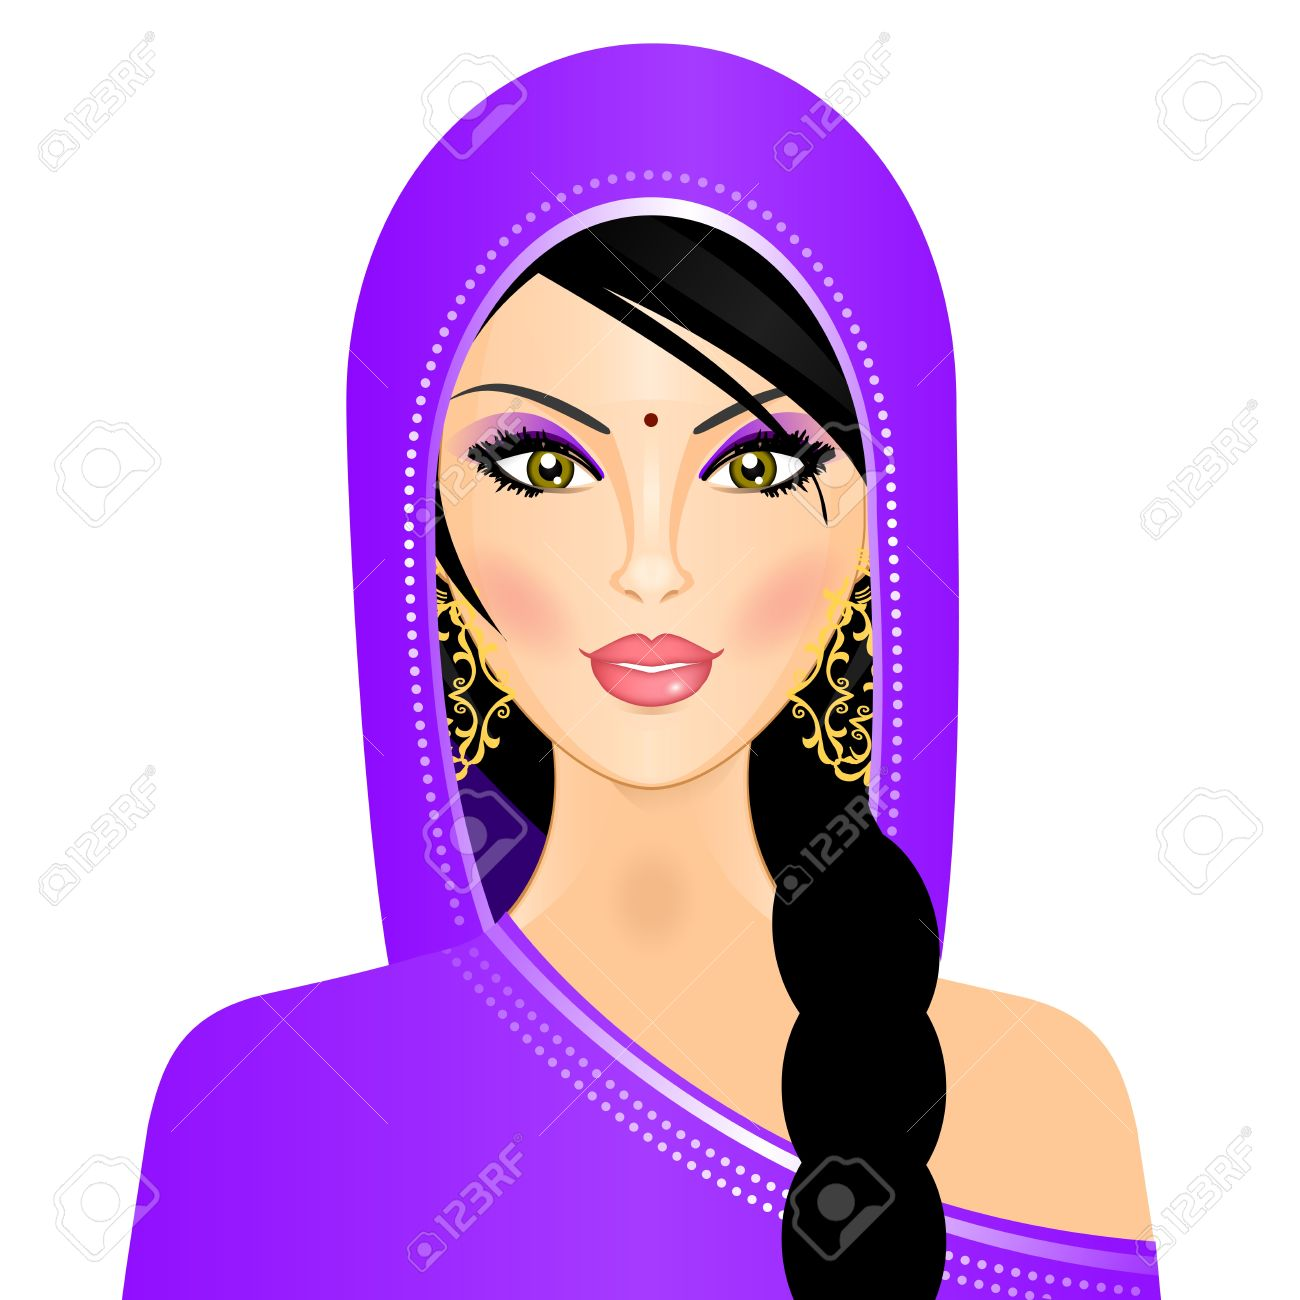 putnam station hindu single women Dubai, bedspace available,  executives single bed space for woman available in dubai,  bainyas metro station, indian boy bed space available 800/= dirham.